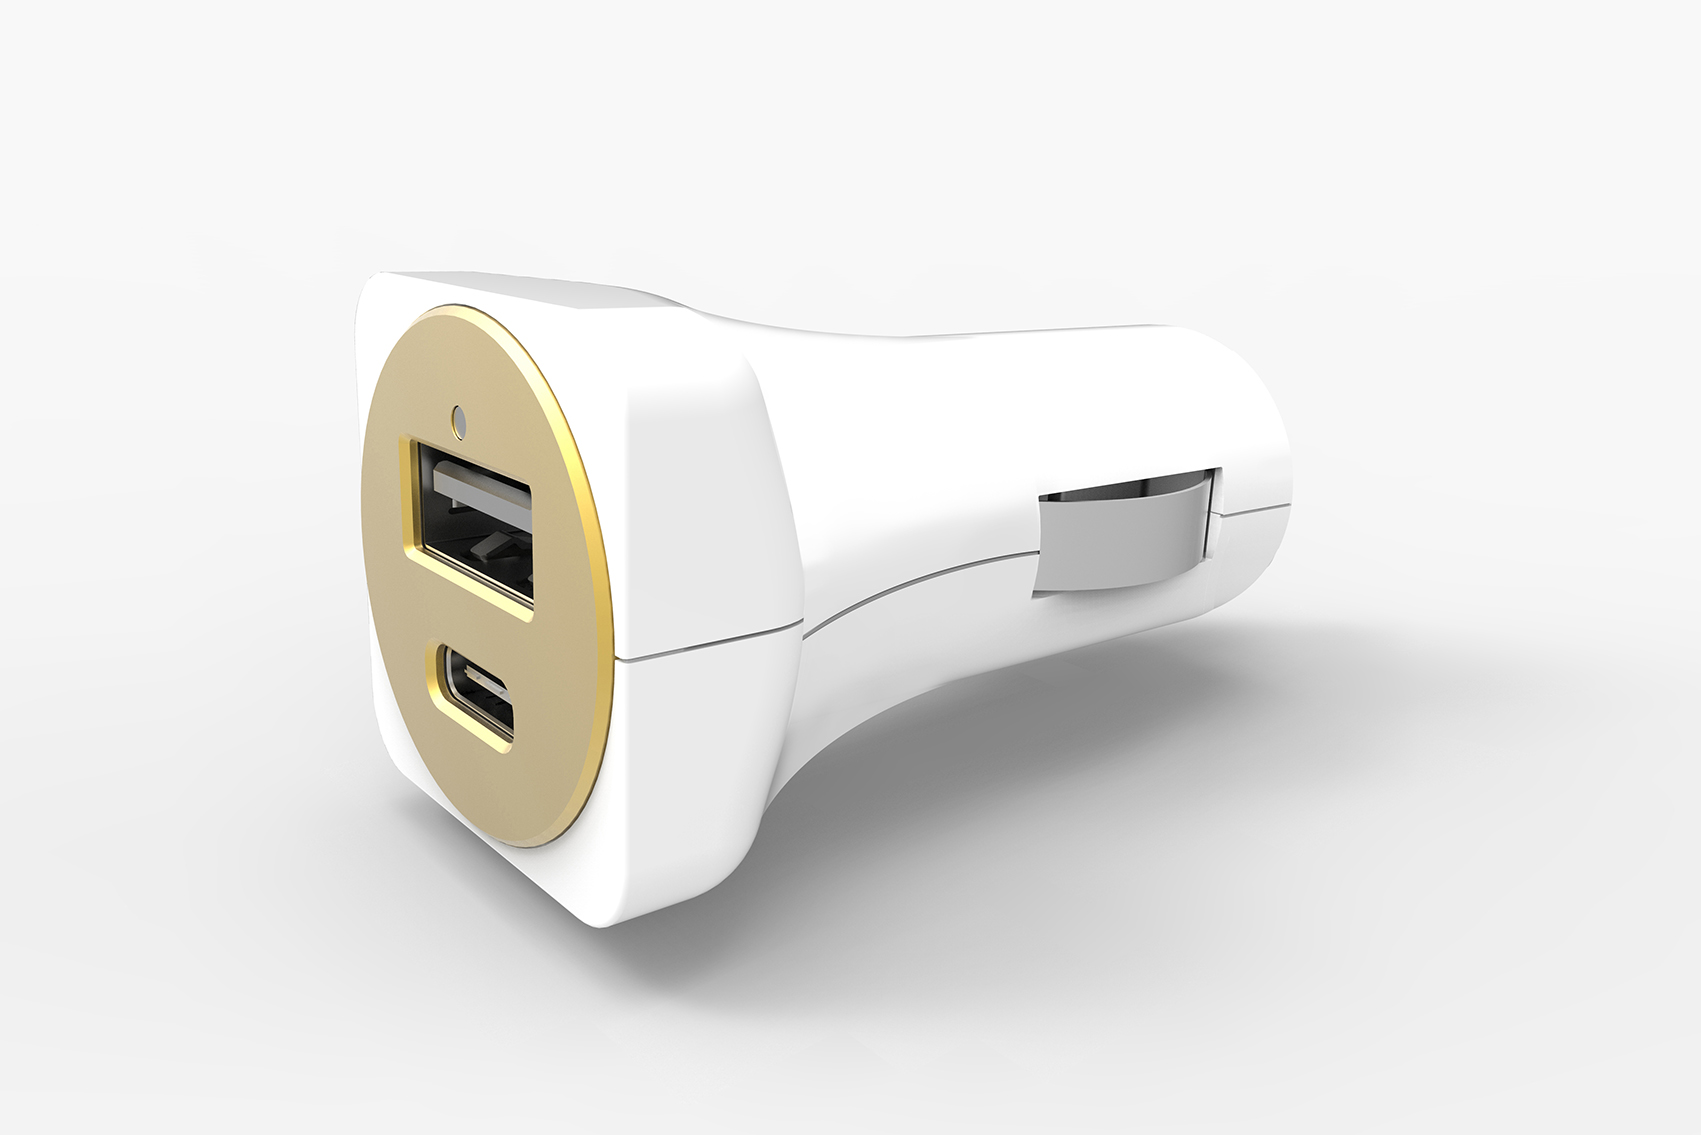 PG-104P Car charger